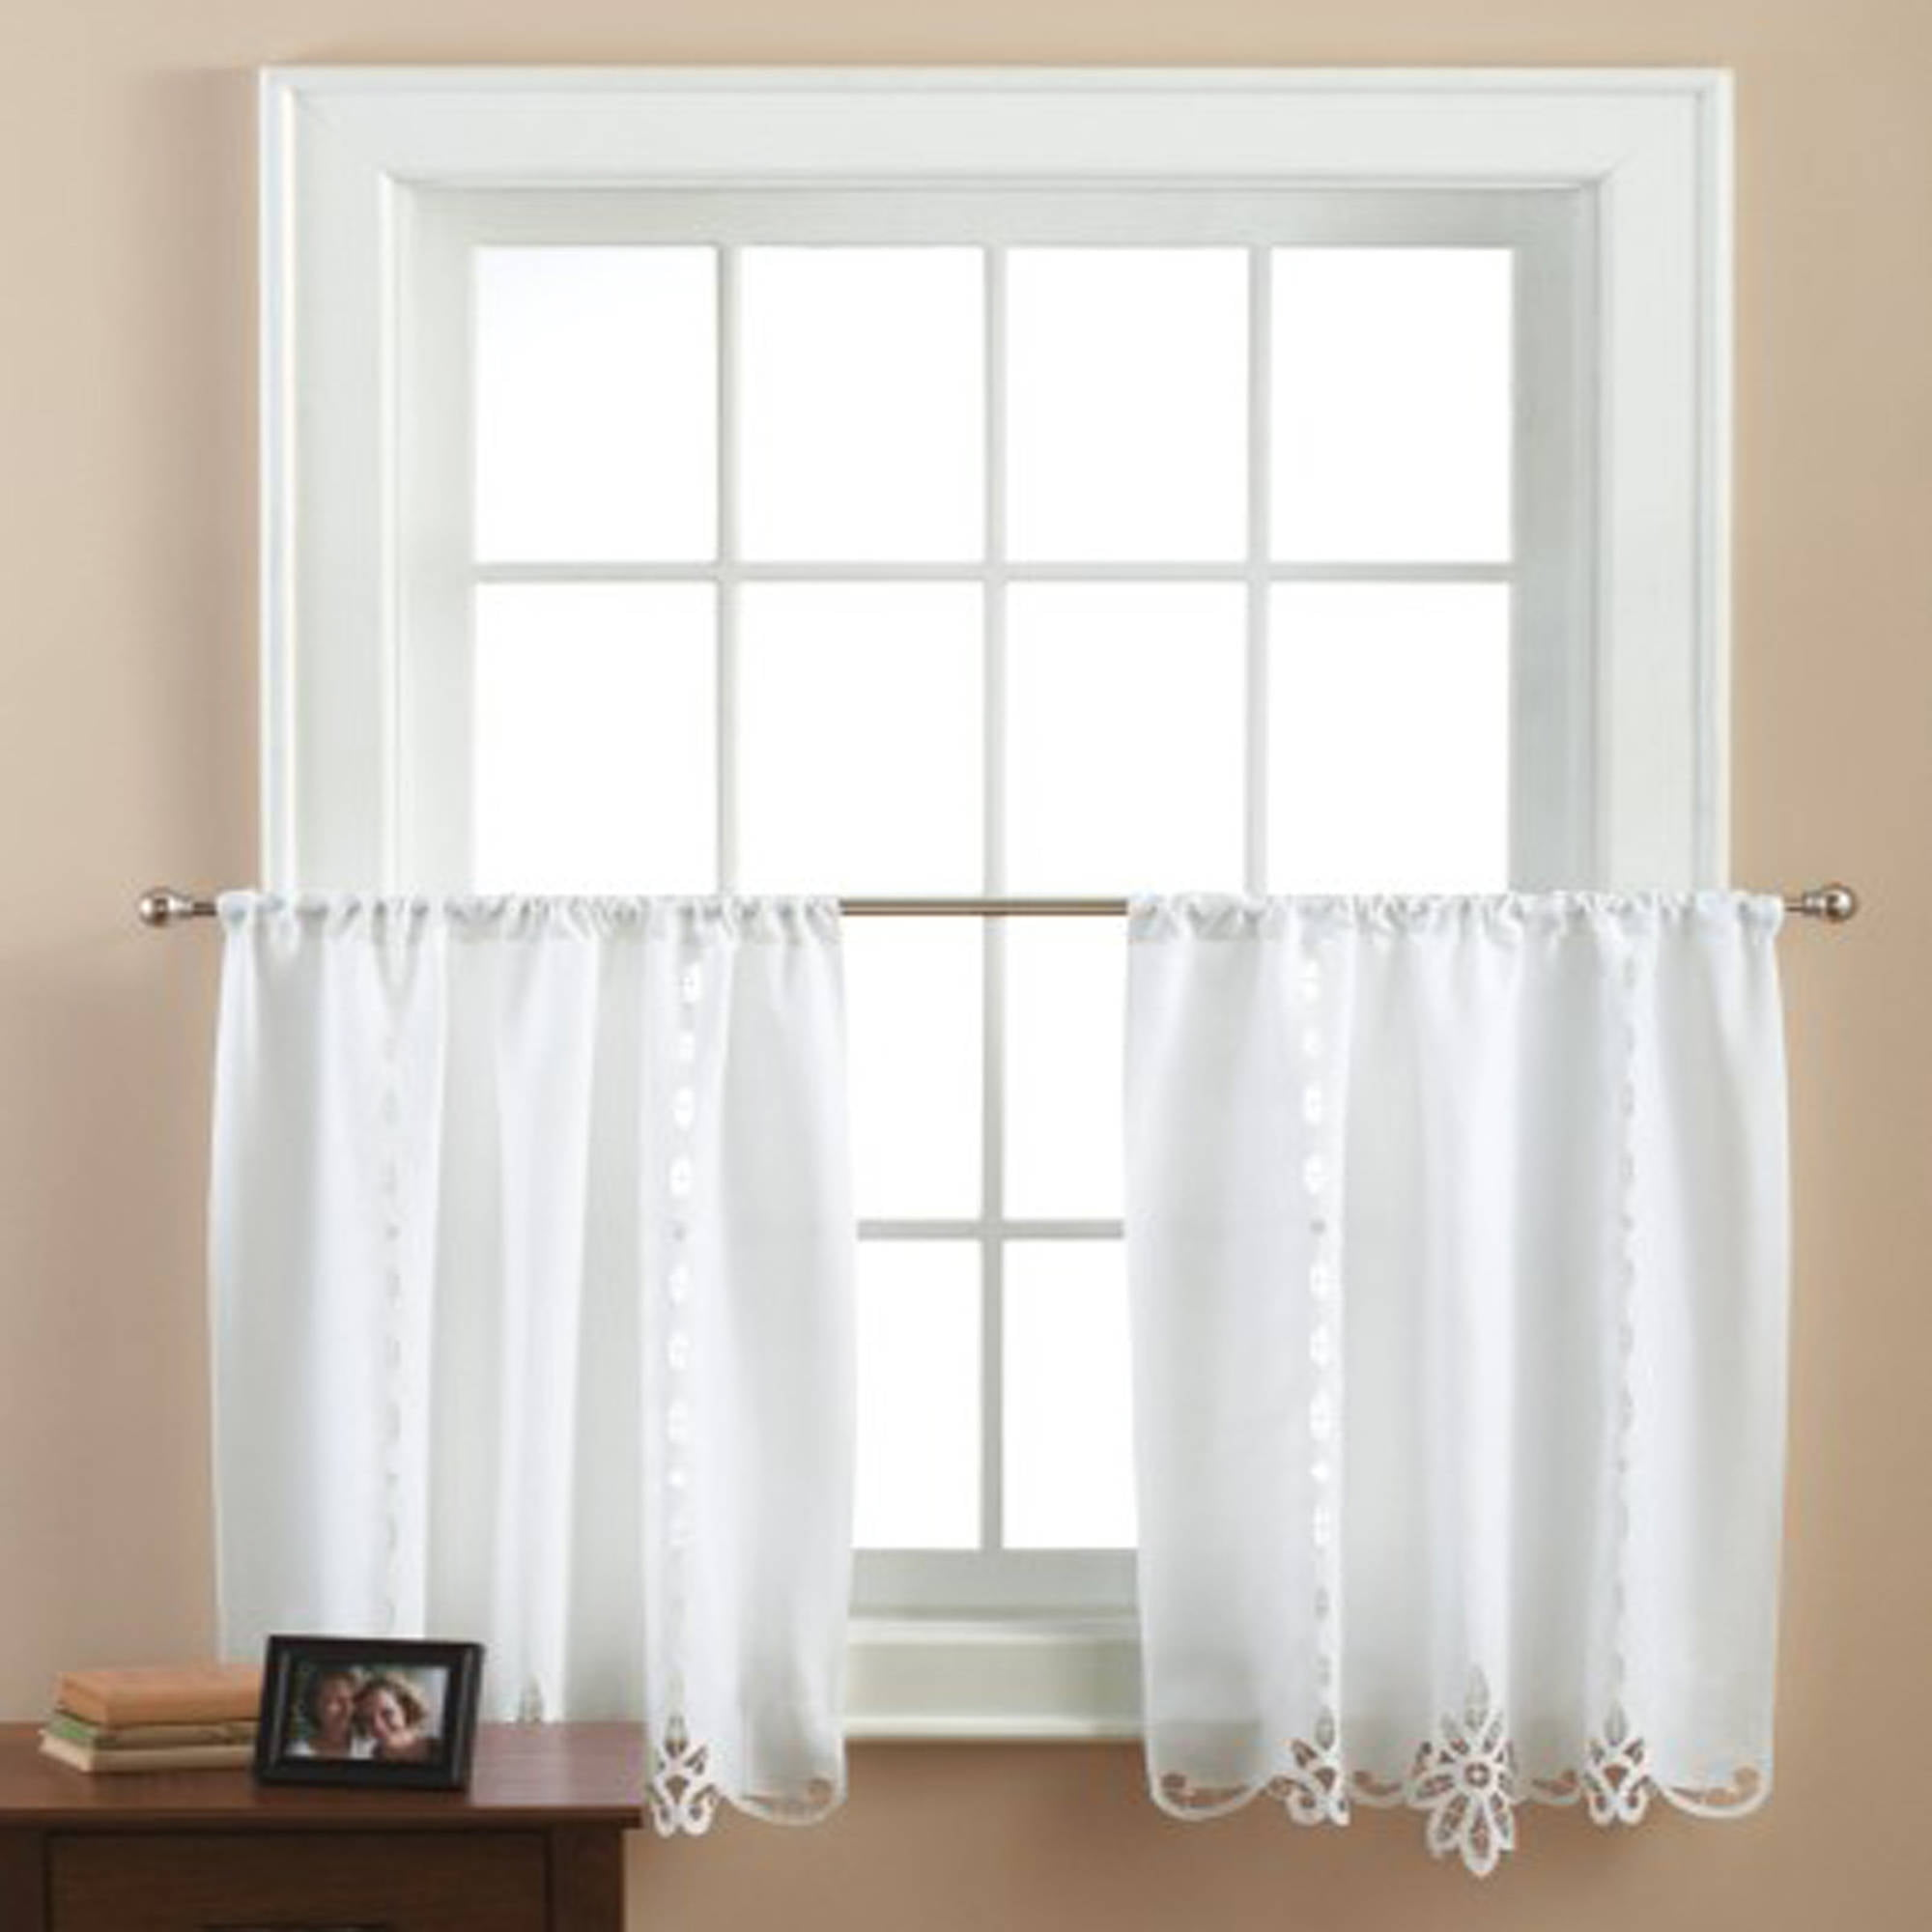 White Lace Swag Kitchen Curtains White Lace Kitchen Curtains